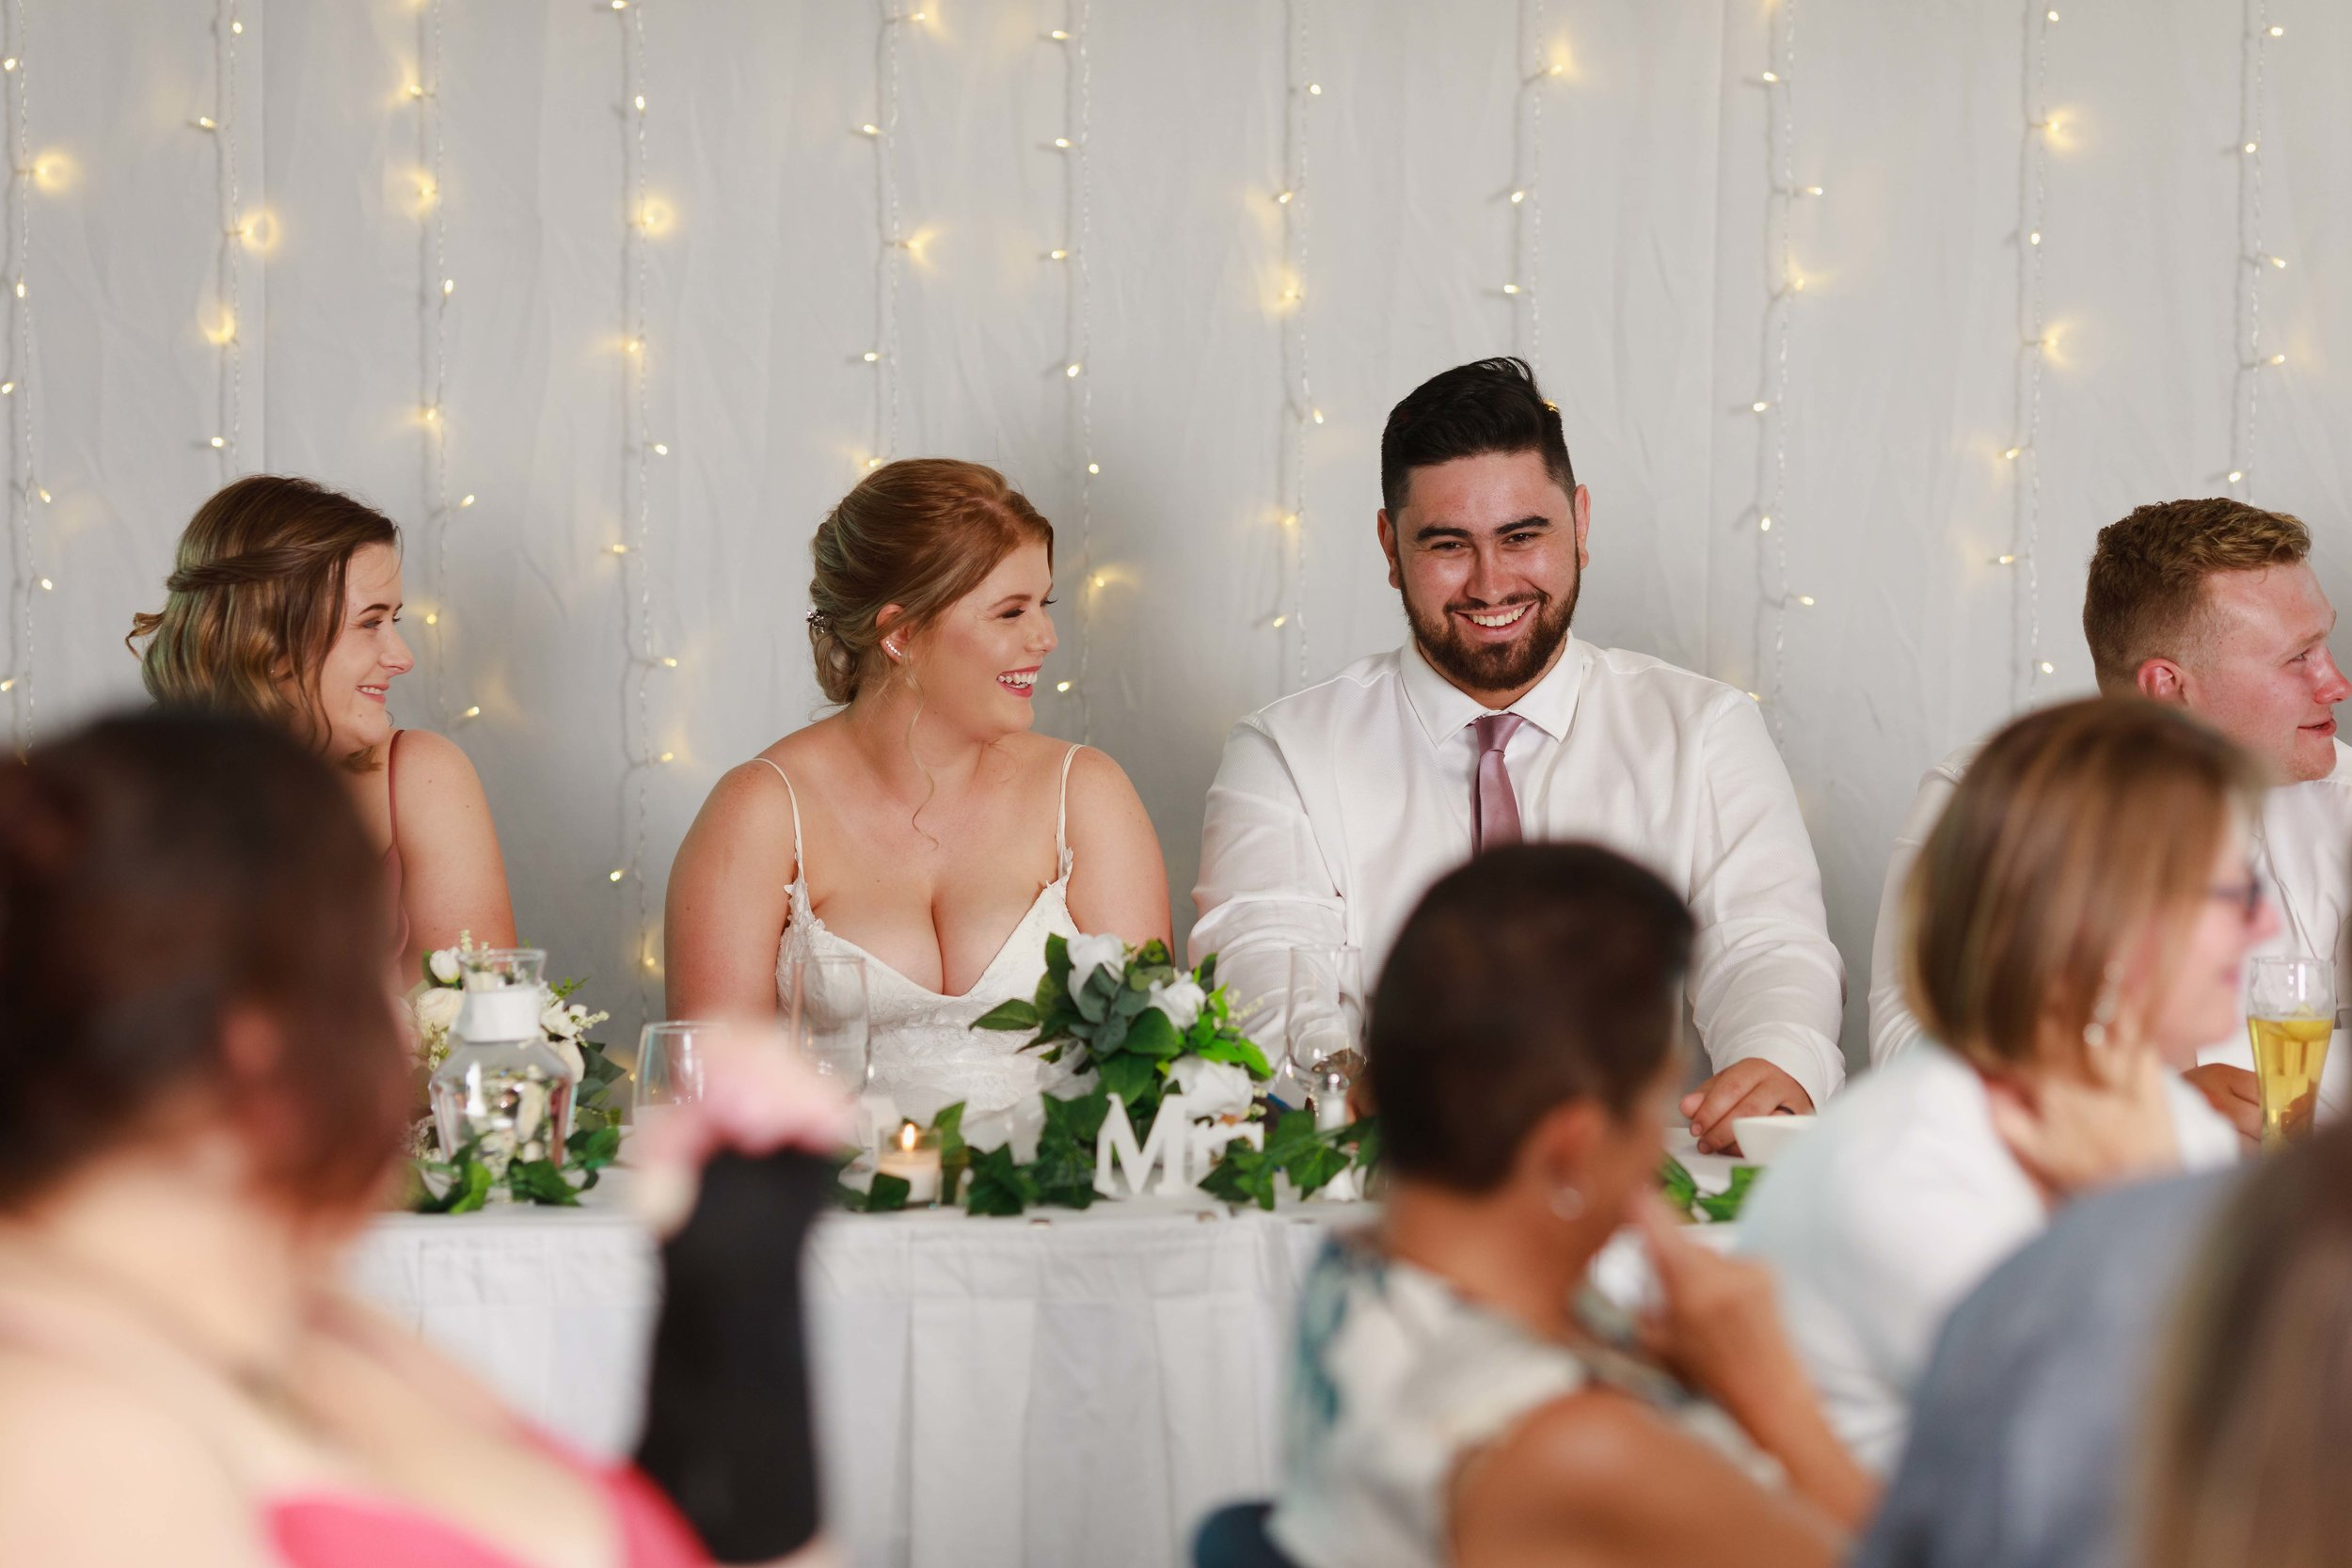 racecourse-highlight-wedding-photography-palmerston-north-167.jpg